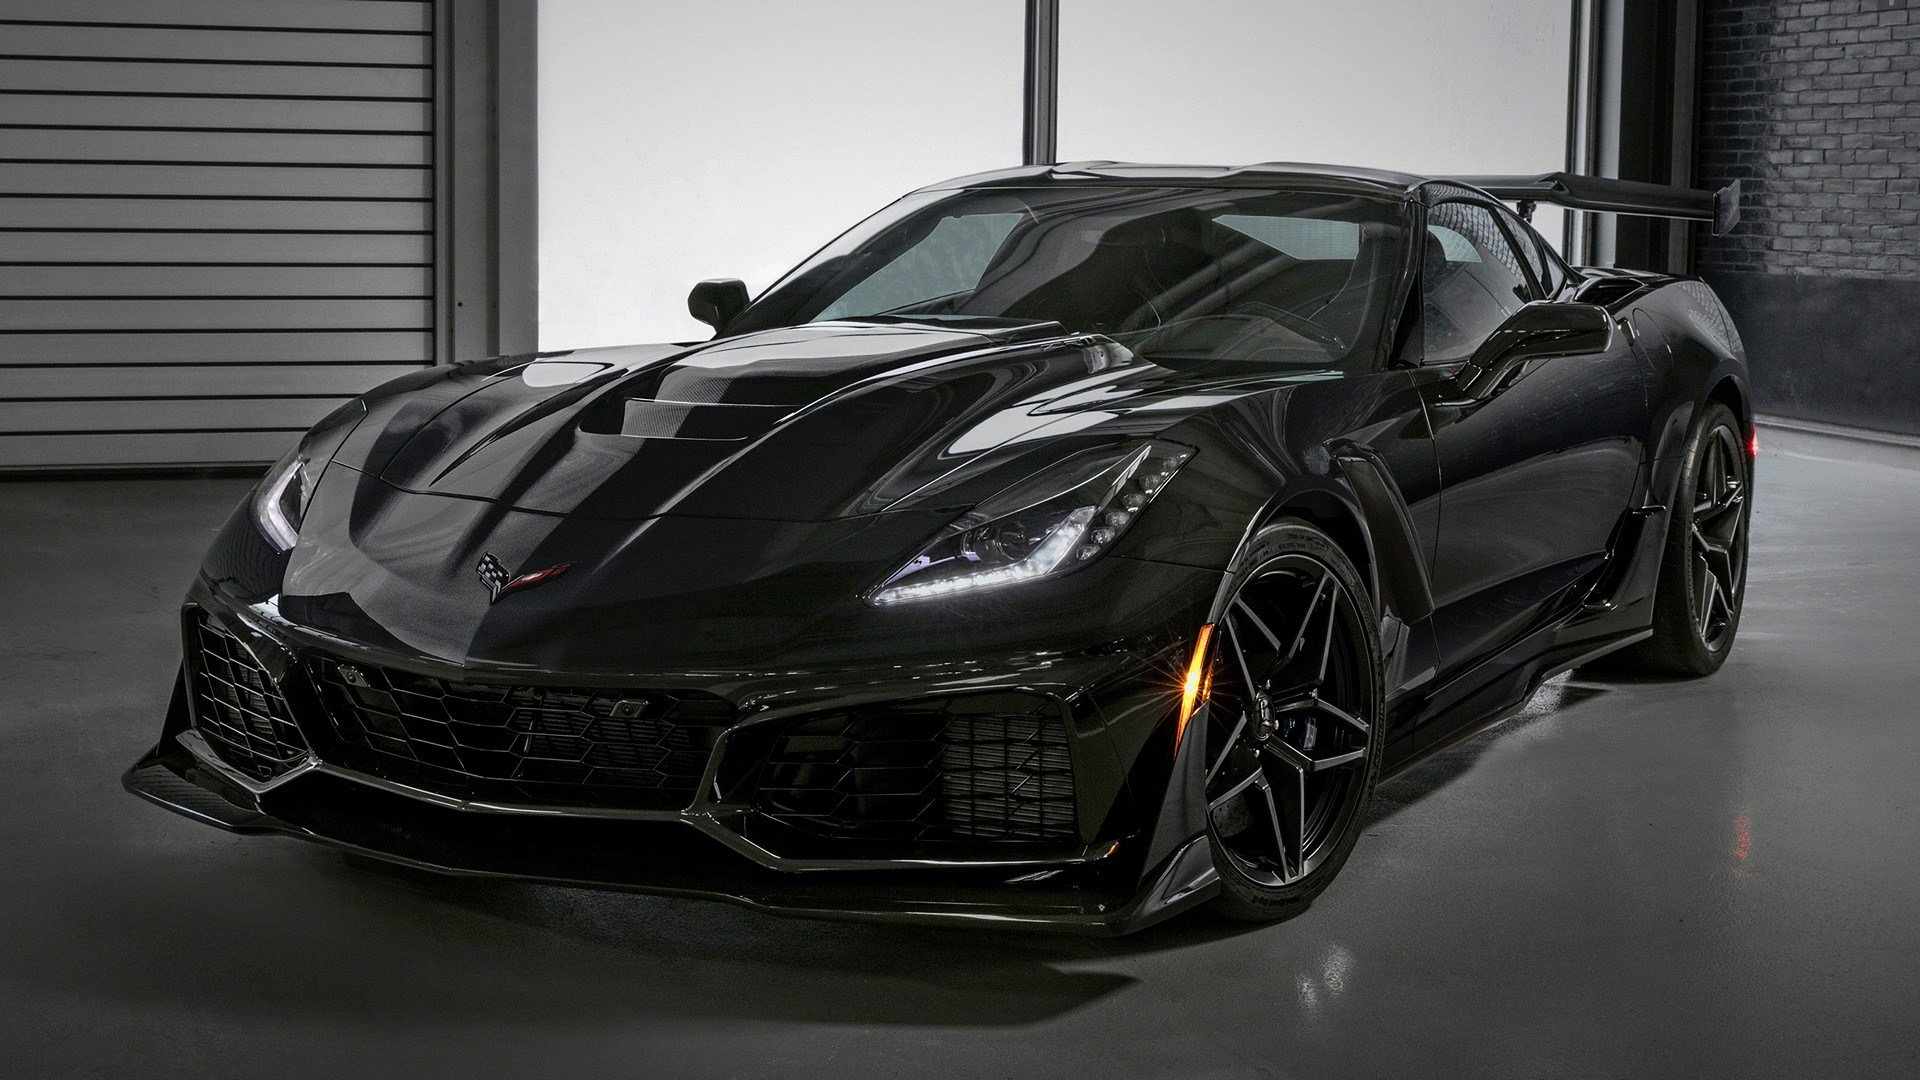 New 2018 Chevrolet Corvette Zr1 Wallpapers And Hd Images On This Month